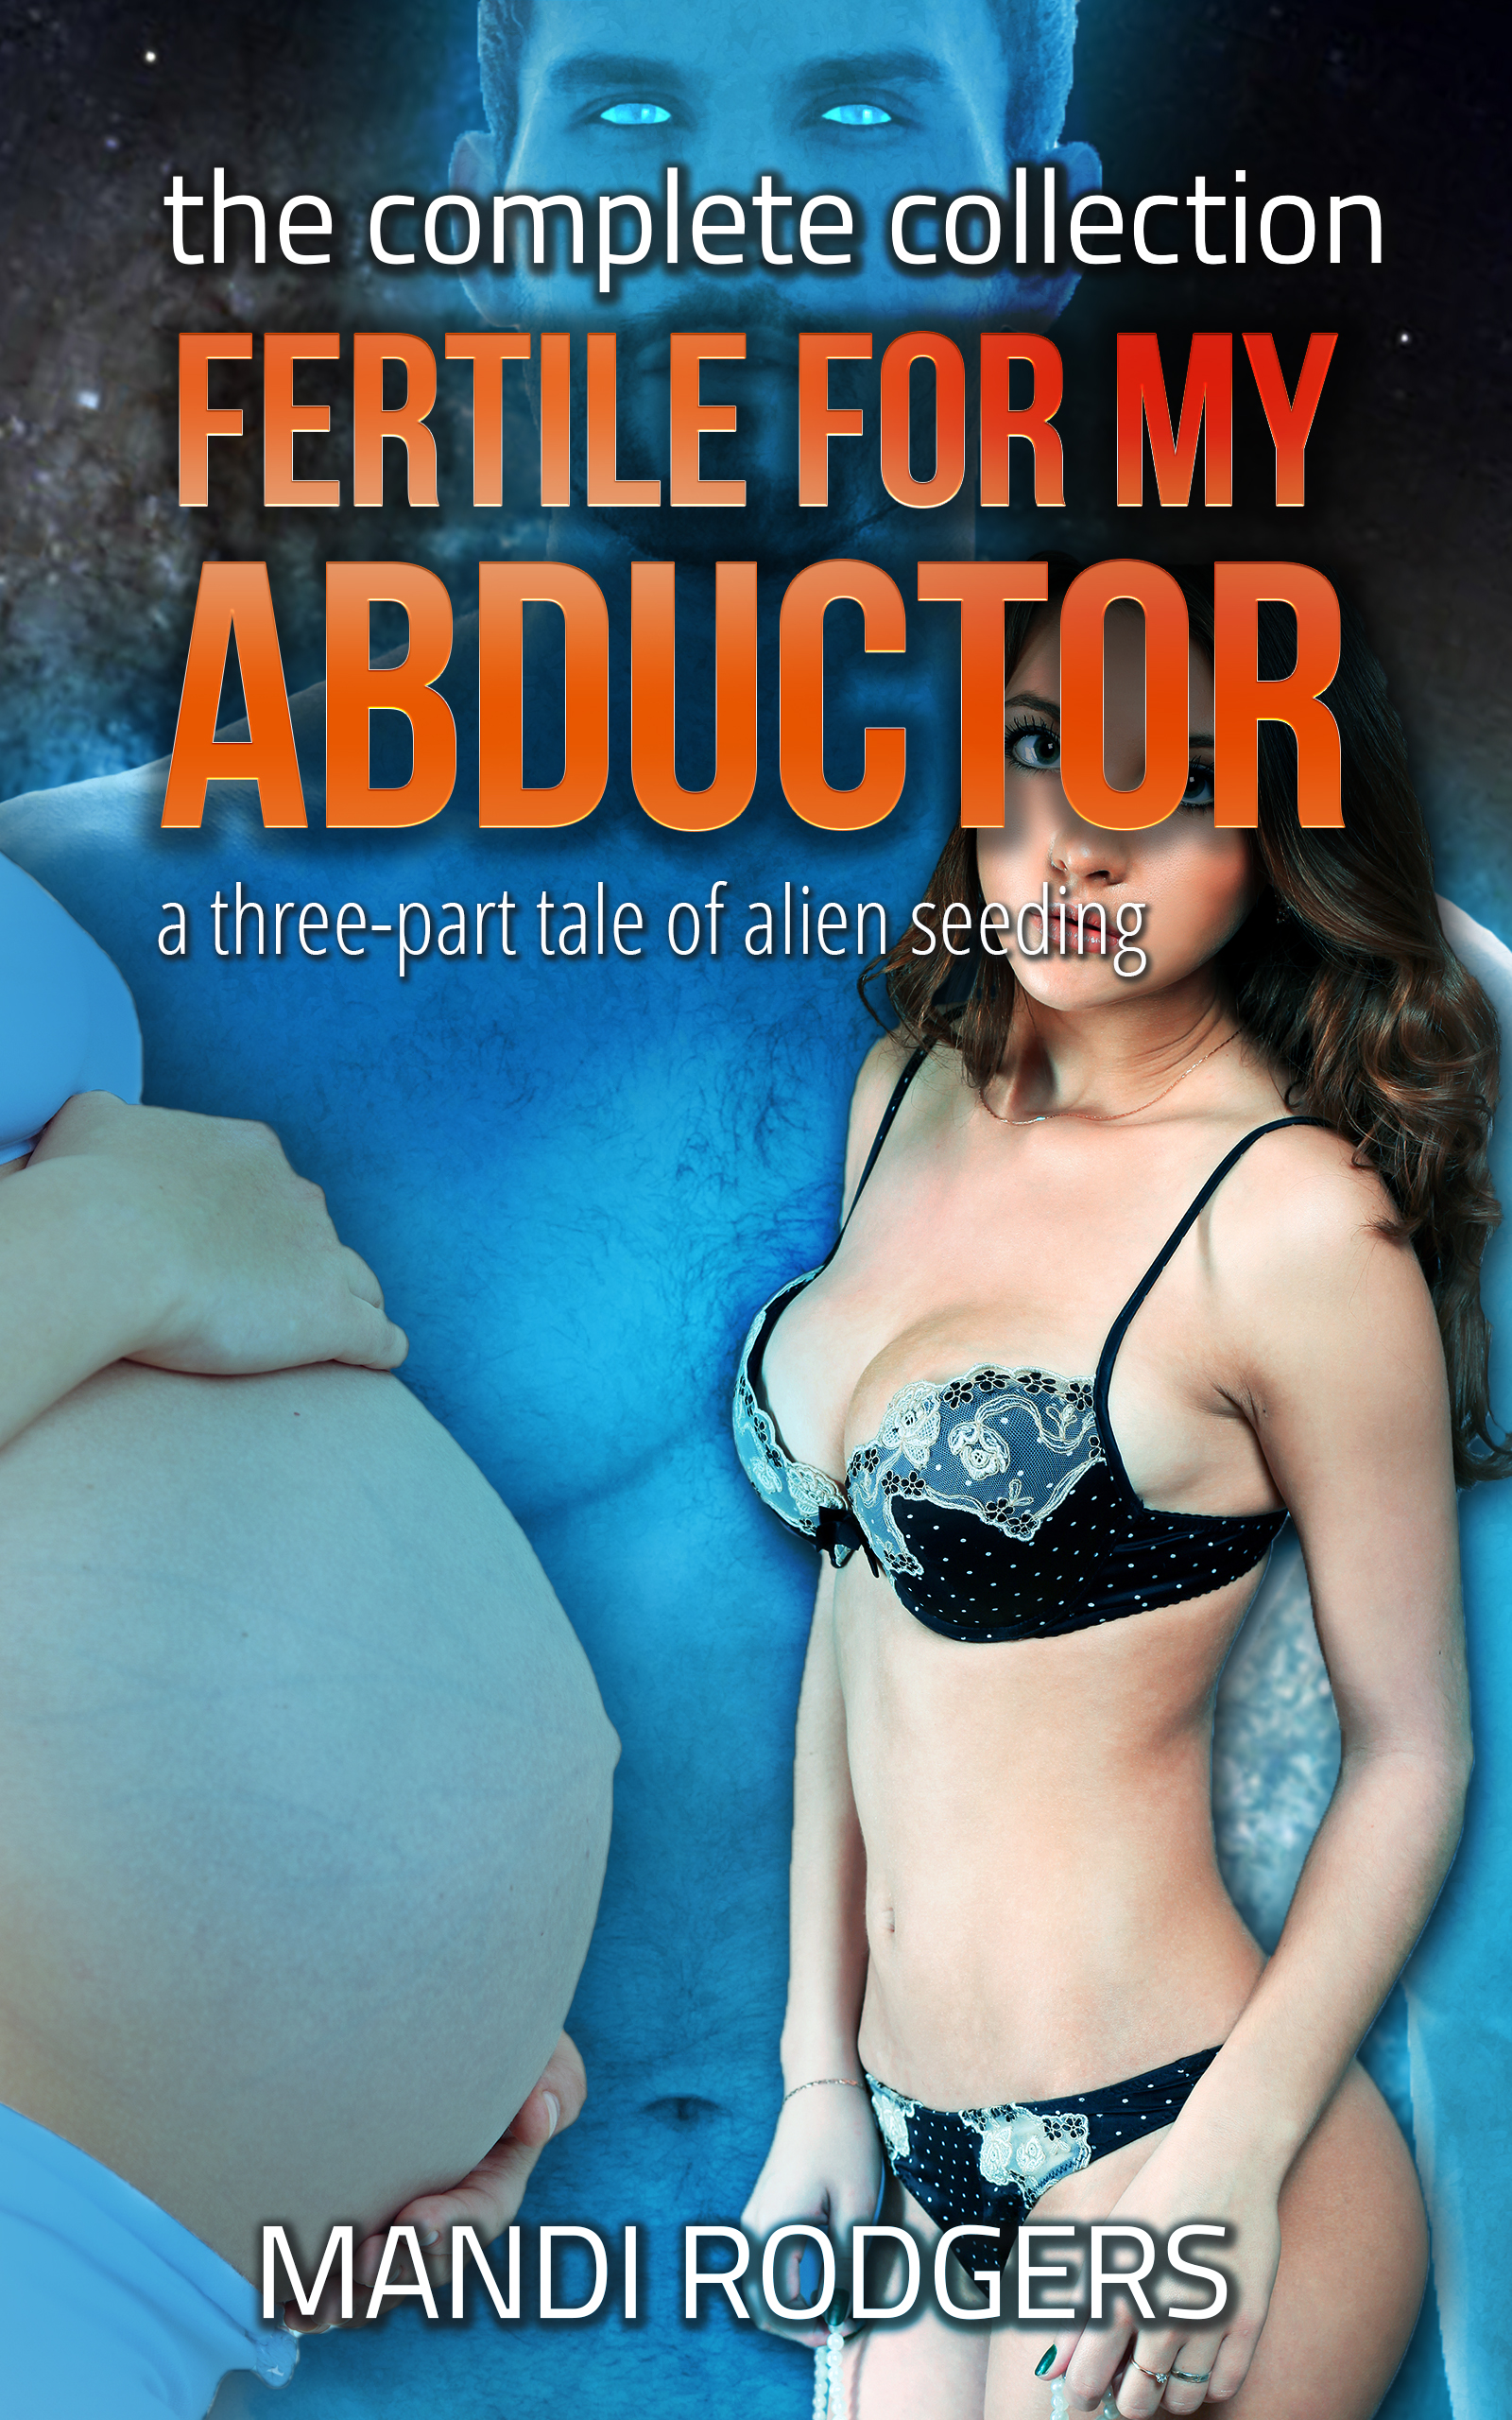 Fertile for my Abductor by Mandi Rodgers